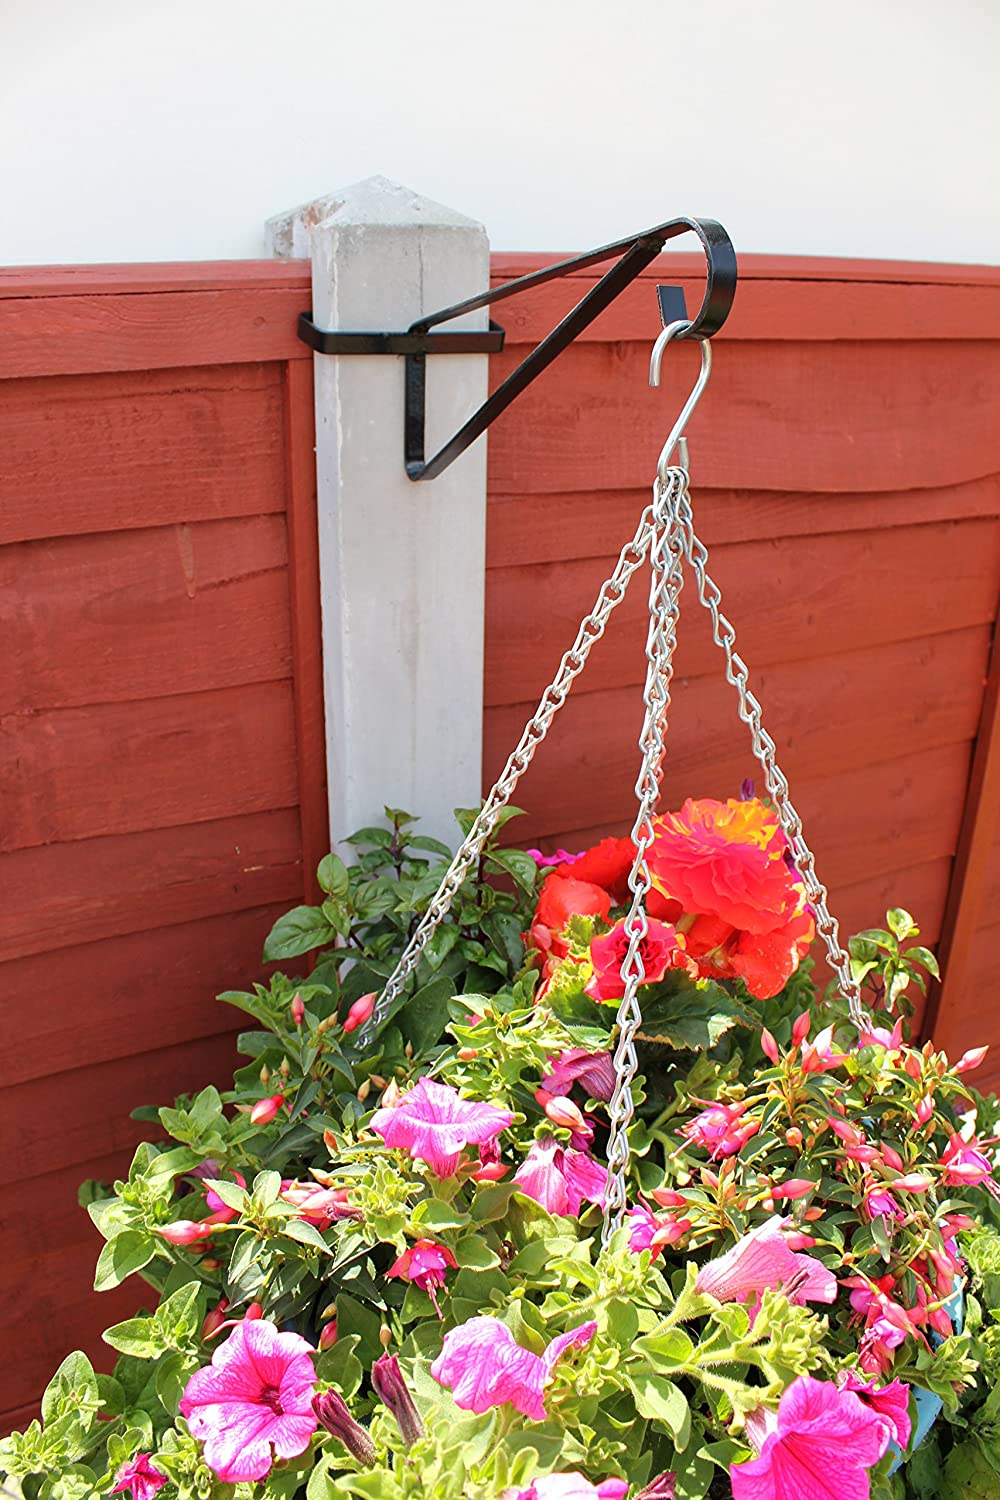 MyGardenGreen Hanging Basket Brackets for Concrete Posts x 4 supports Easy Fill baskets